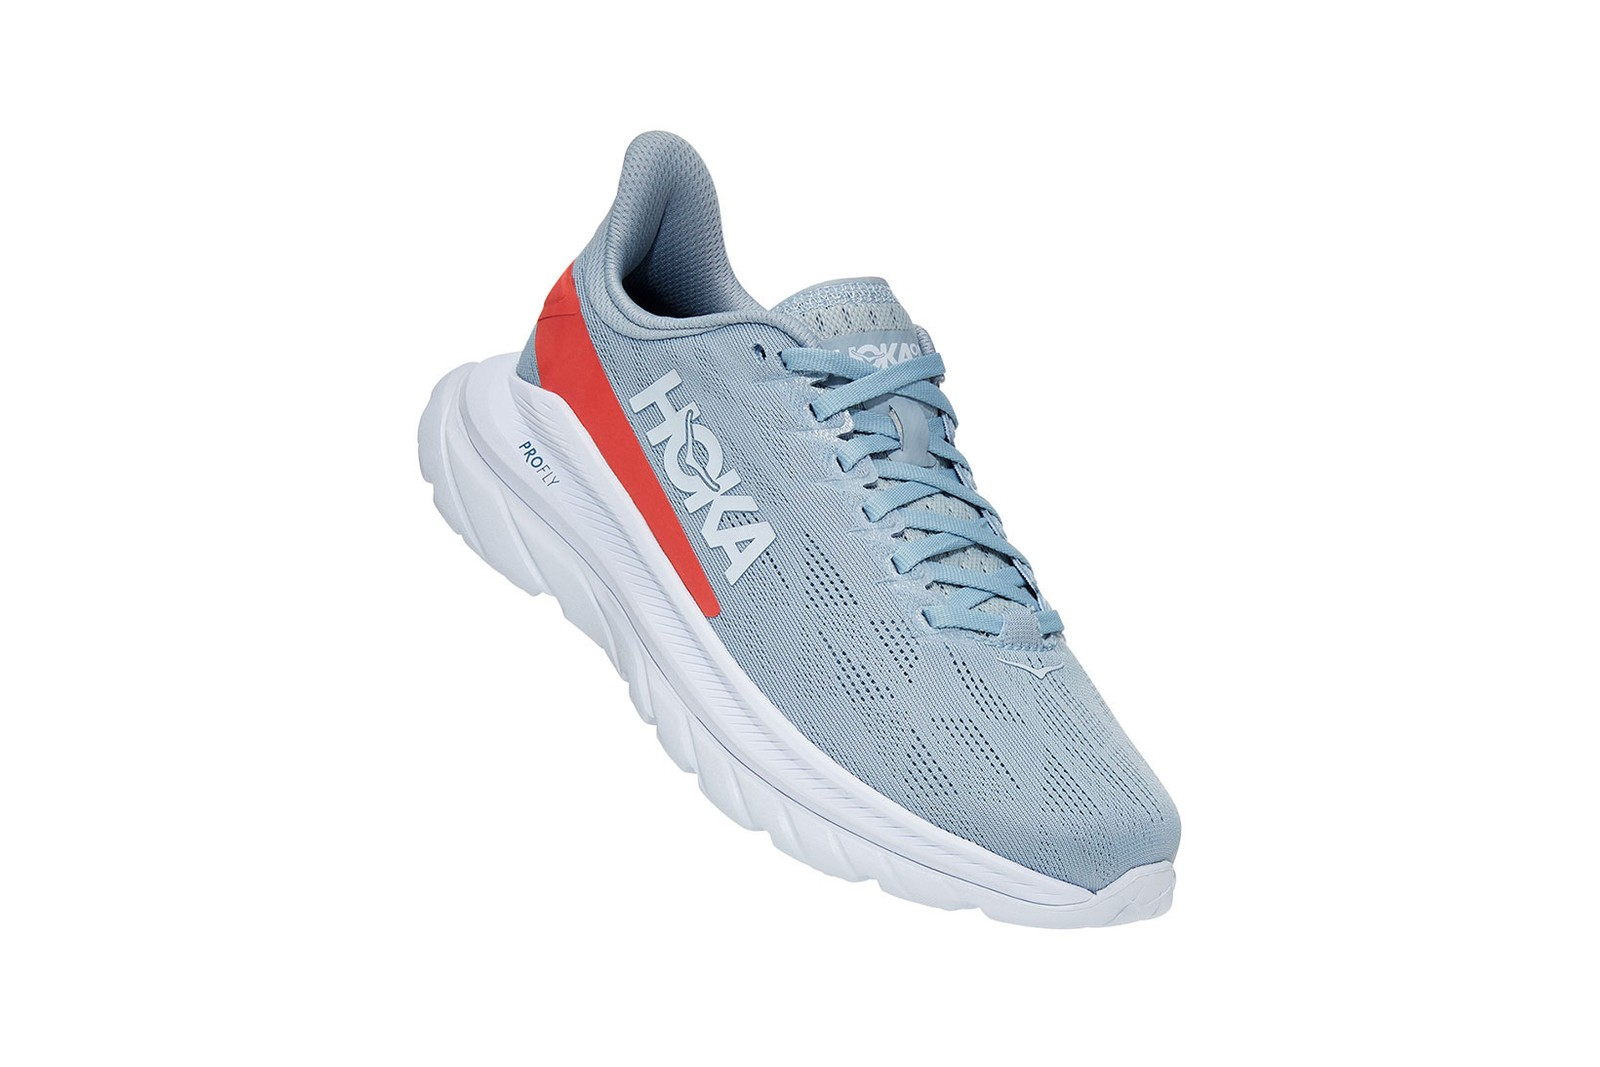 best running shoes for women hoka marc 4 neon yellow white footwear workout sneakers exercise active lifestyle